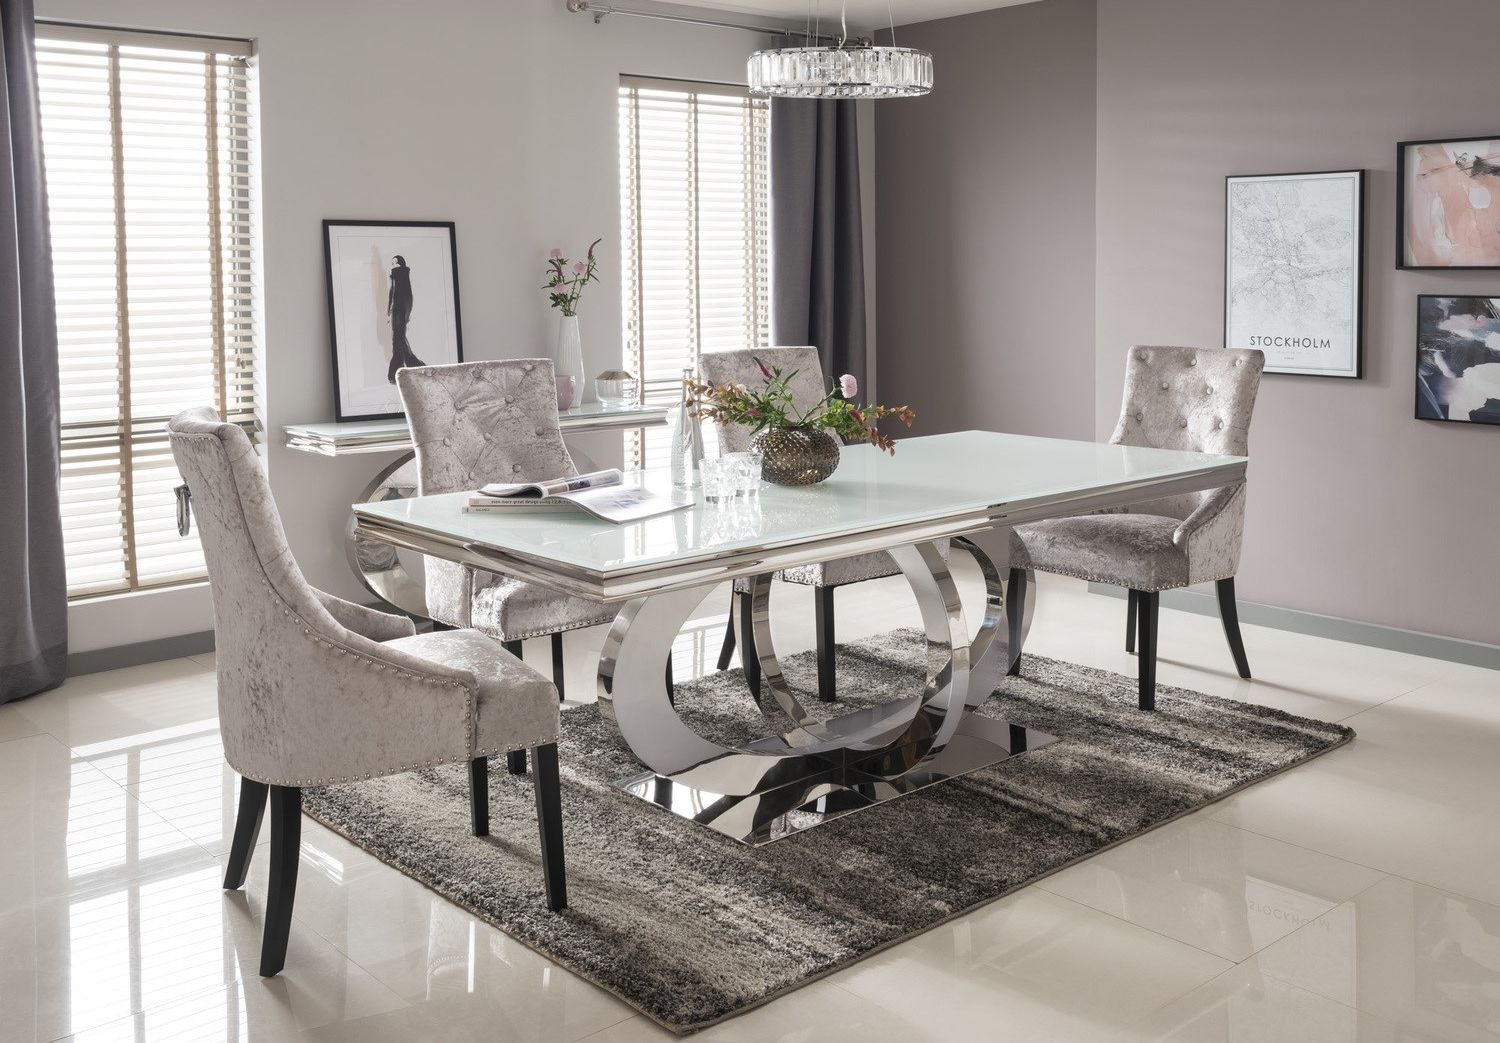 Vida Living Orion White Glass Dining Table 180cm White Glass Dining Table Glass Top Dining Table Chrome Dining Table